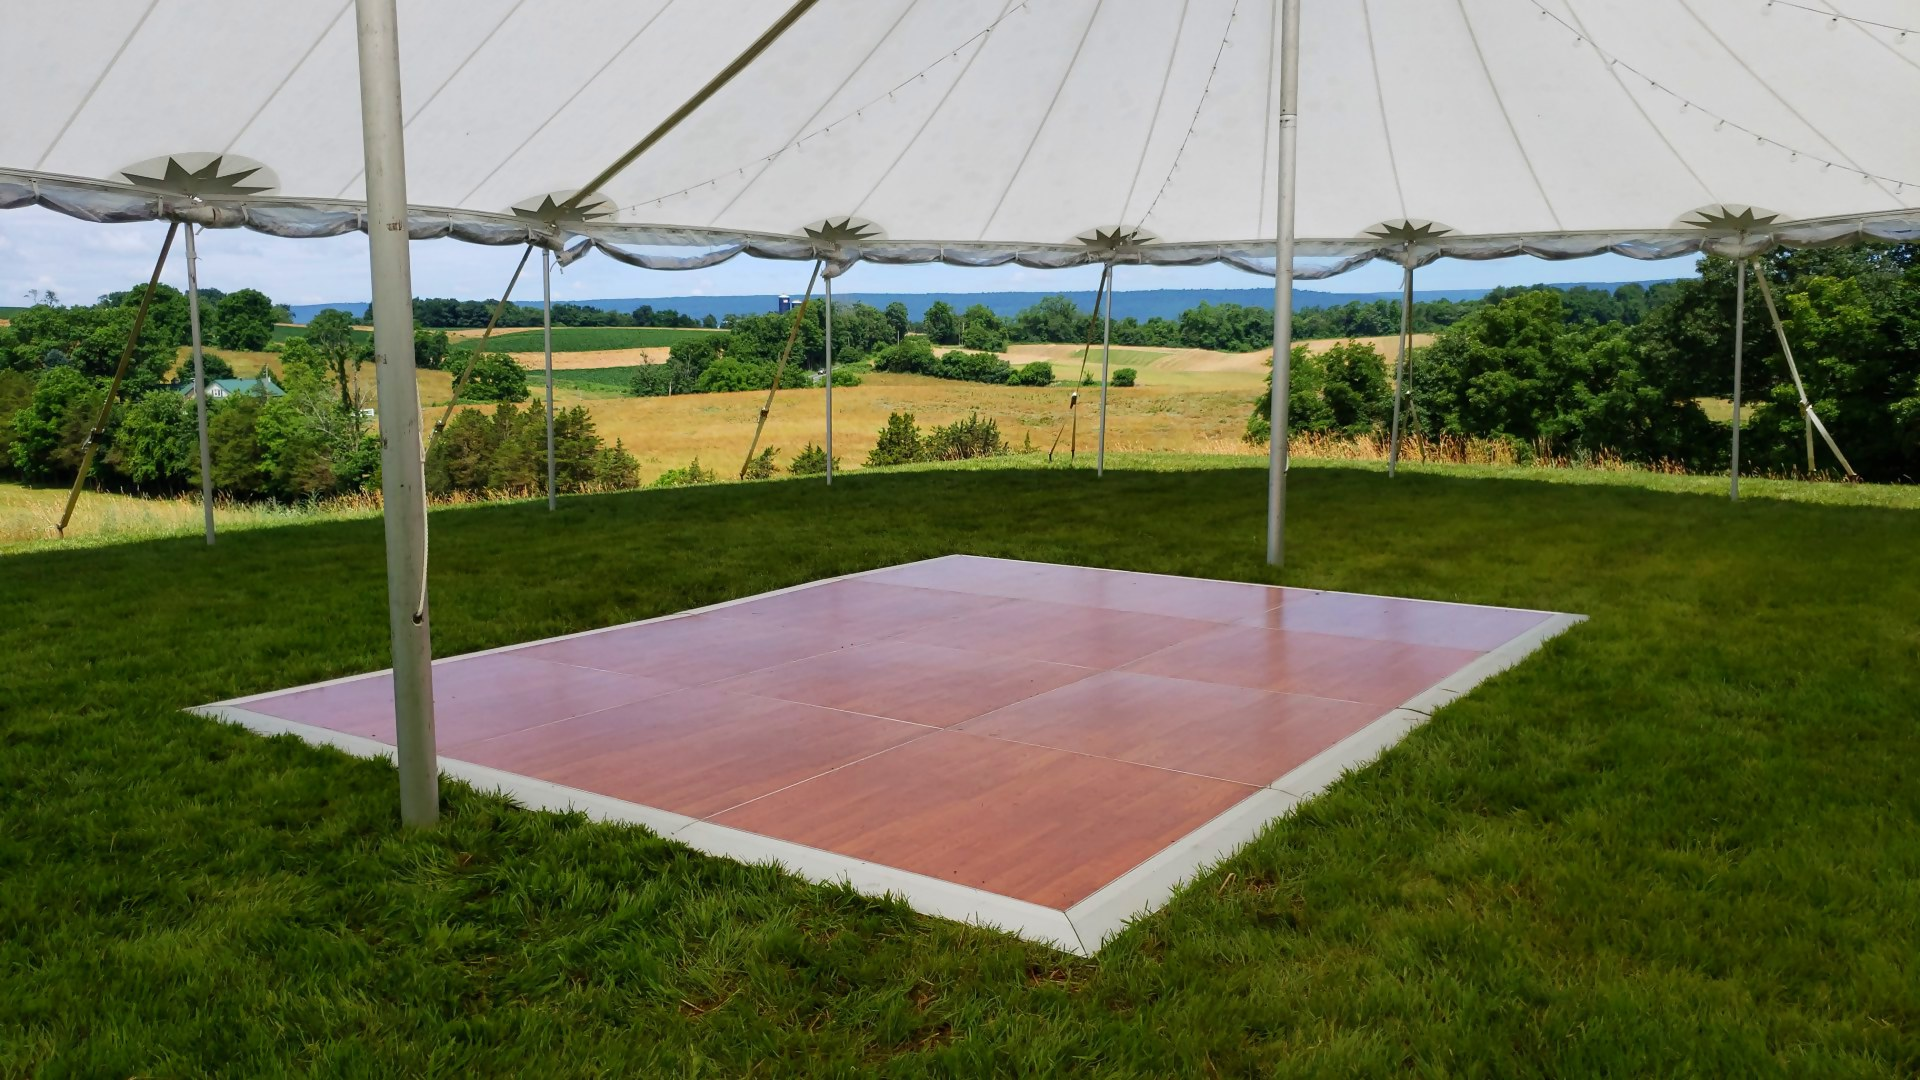 Beautiful Cherry dance floor for rent in Myerstown, PA